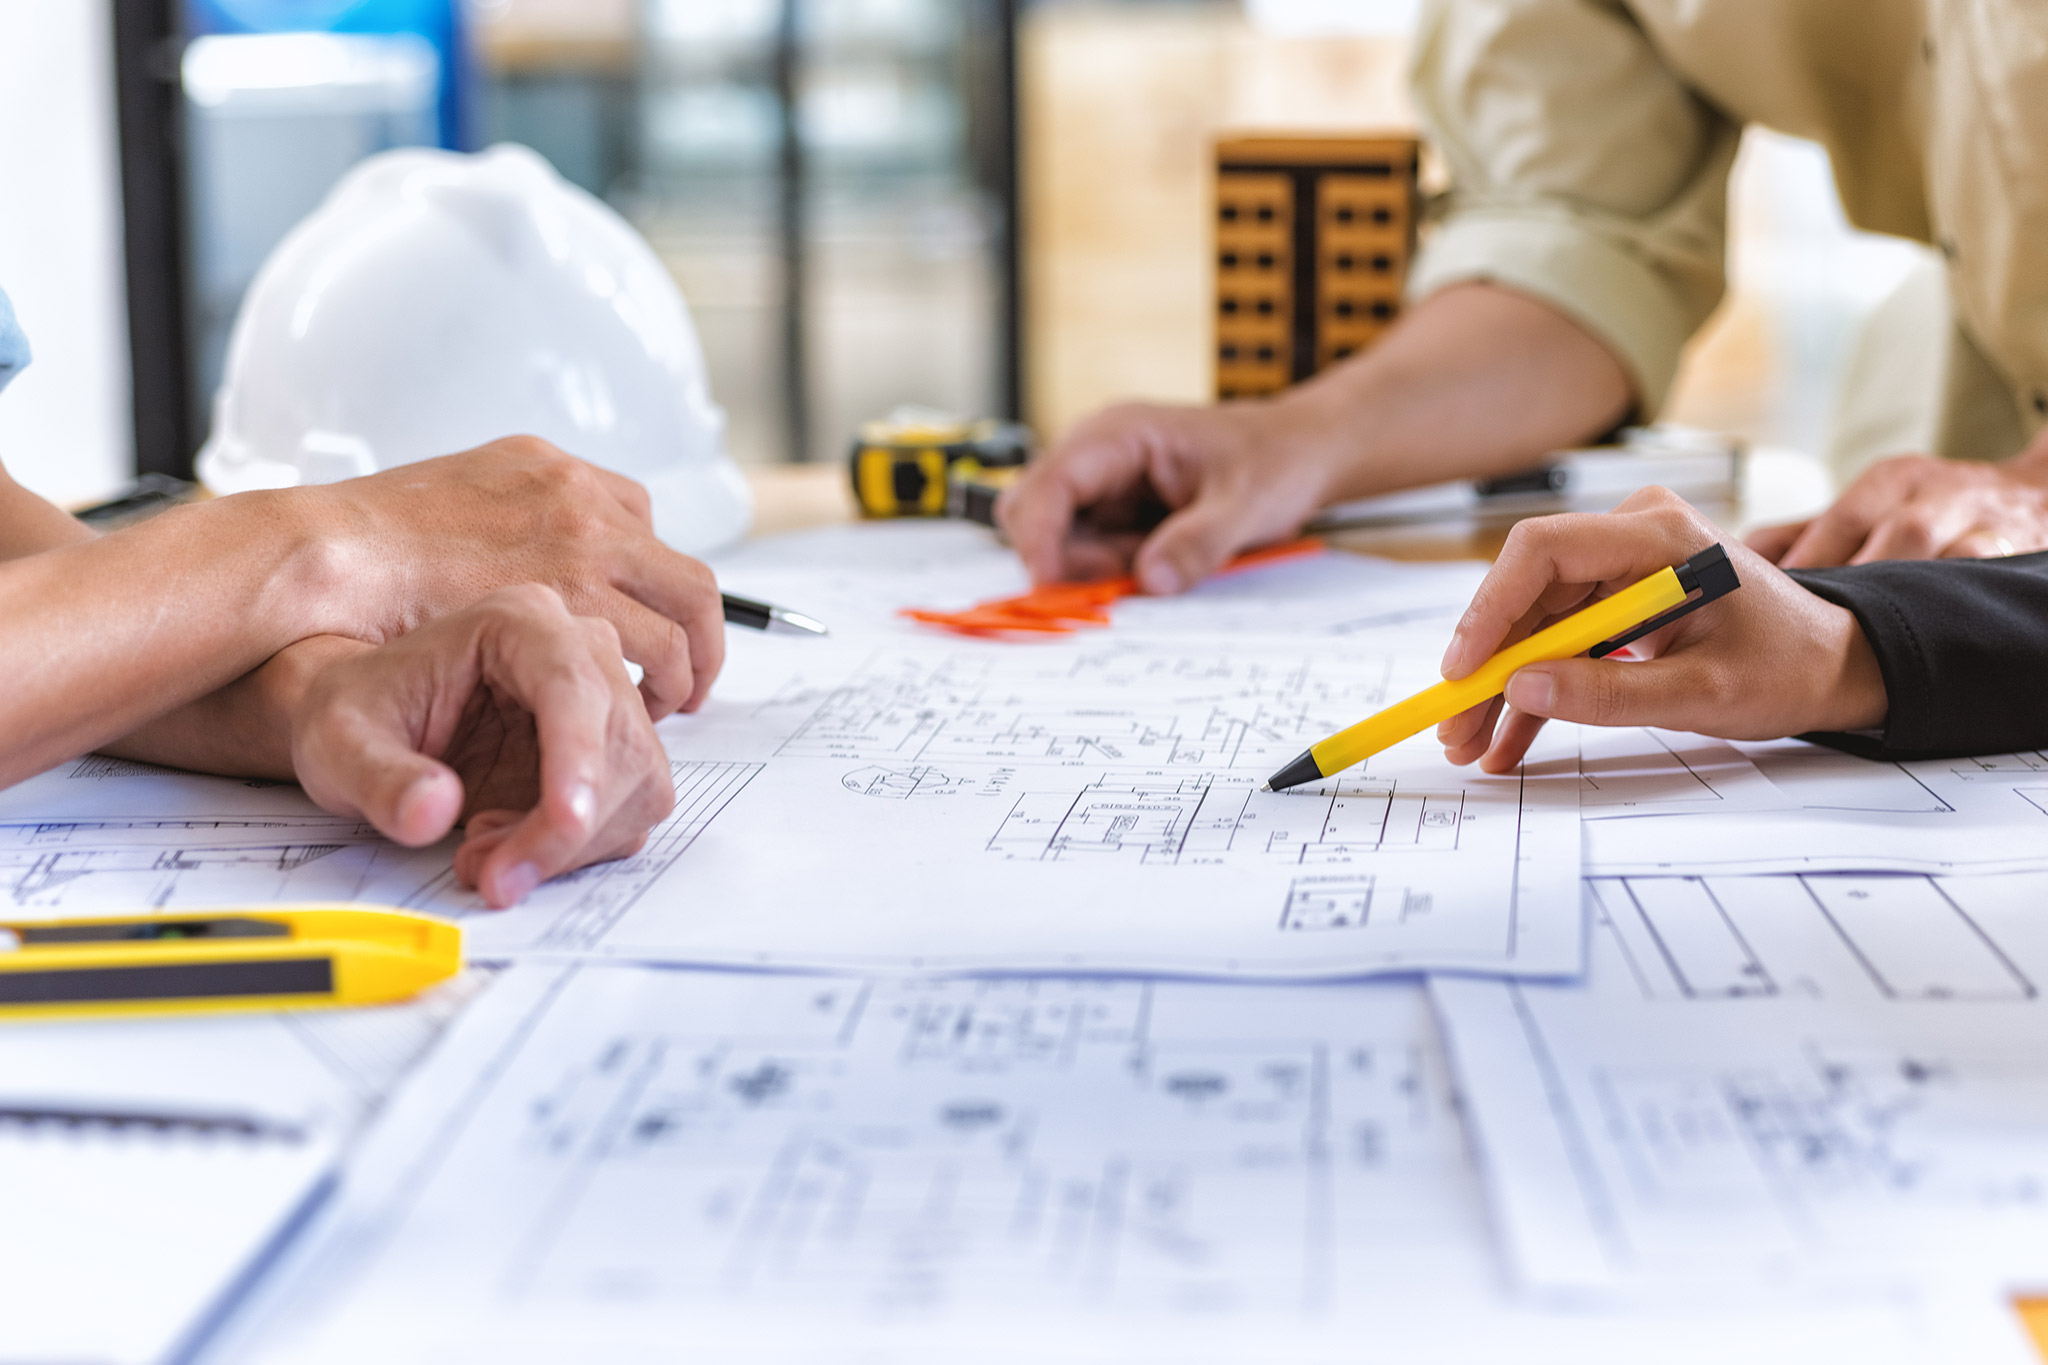 Important things to be checked before hiring a professional architect